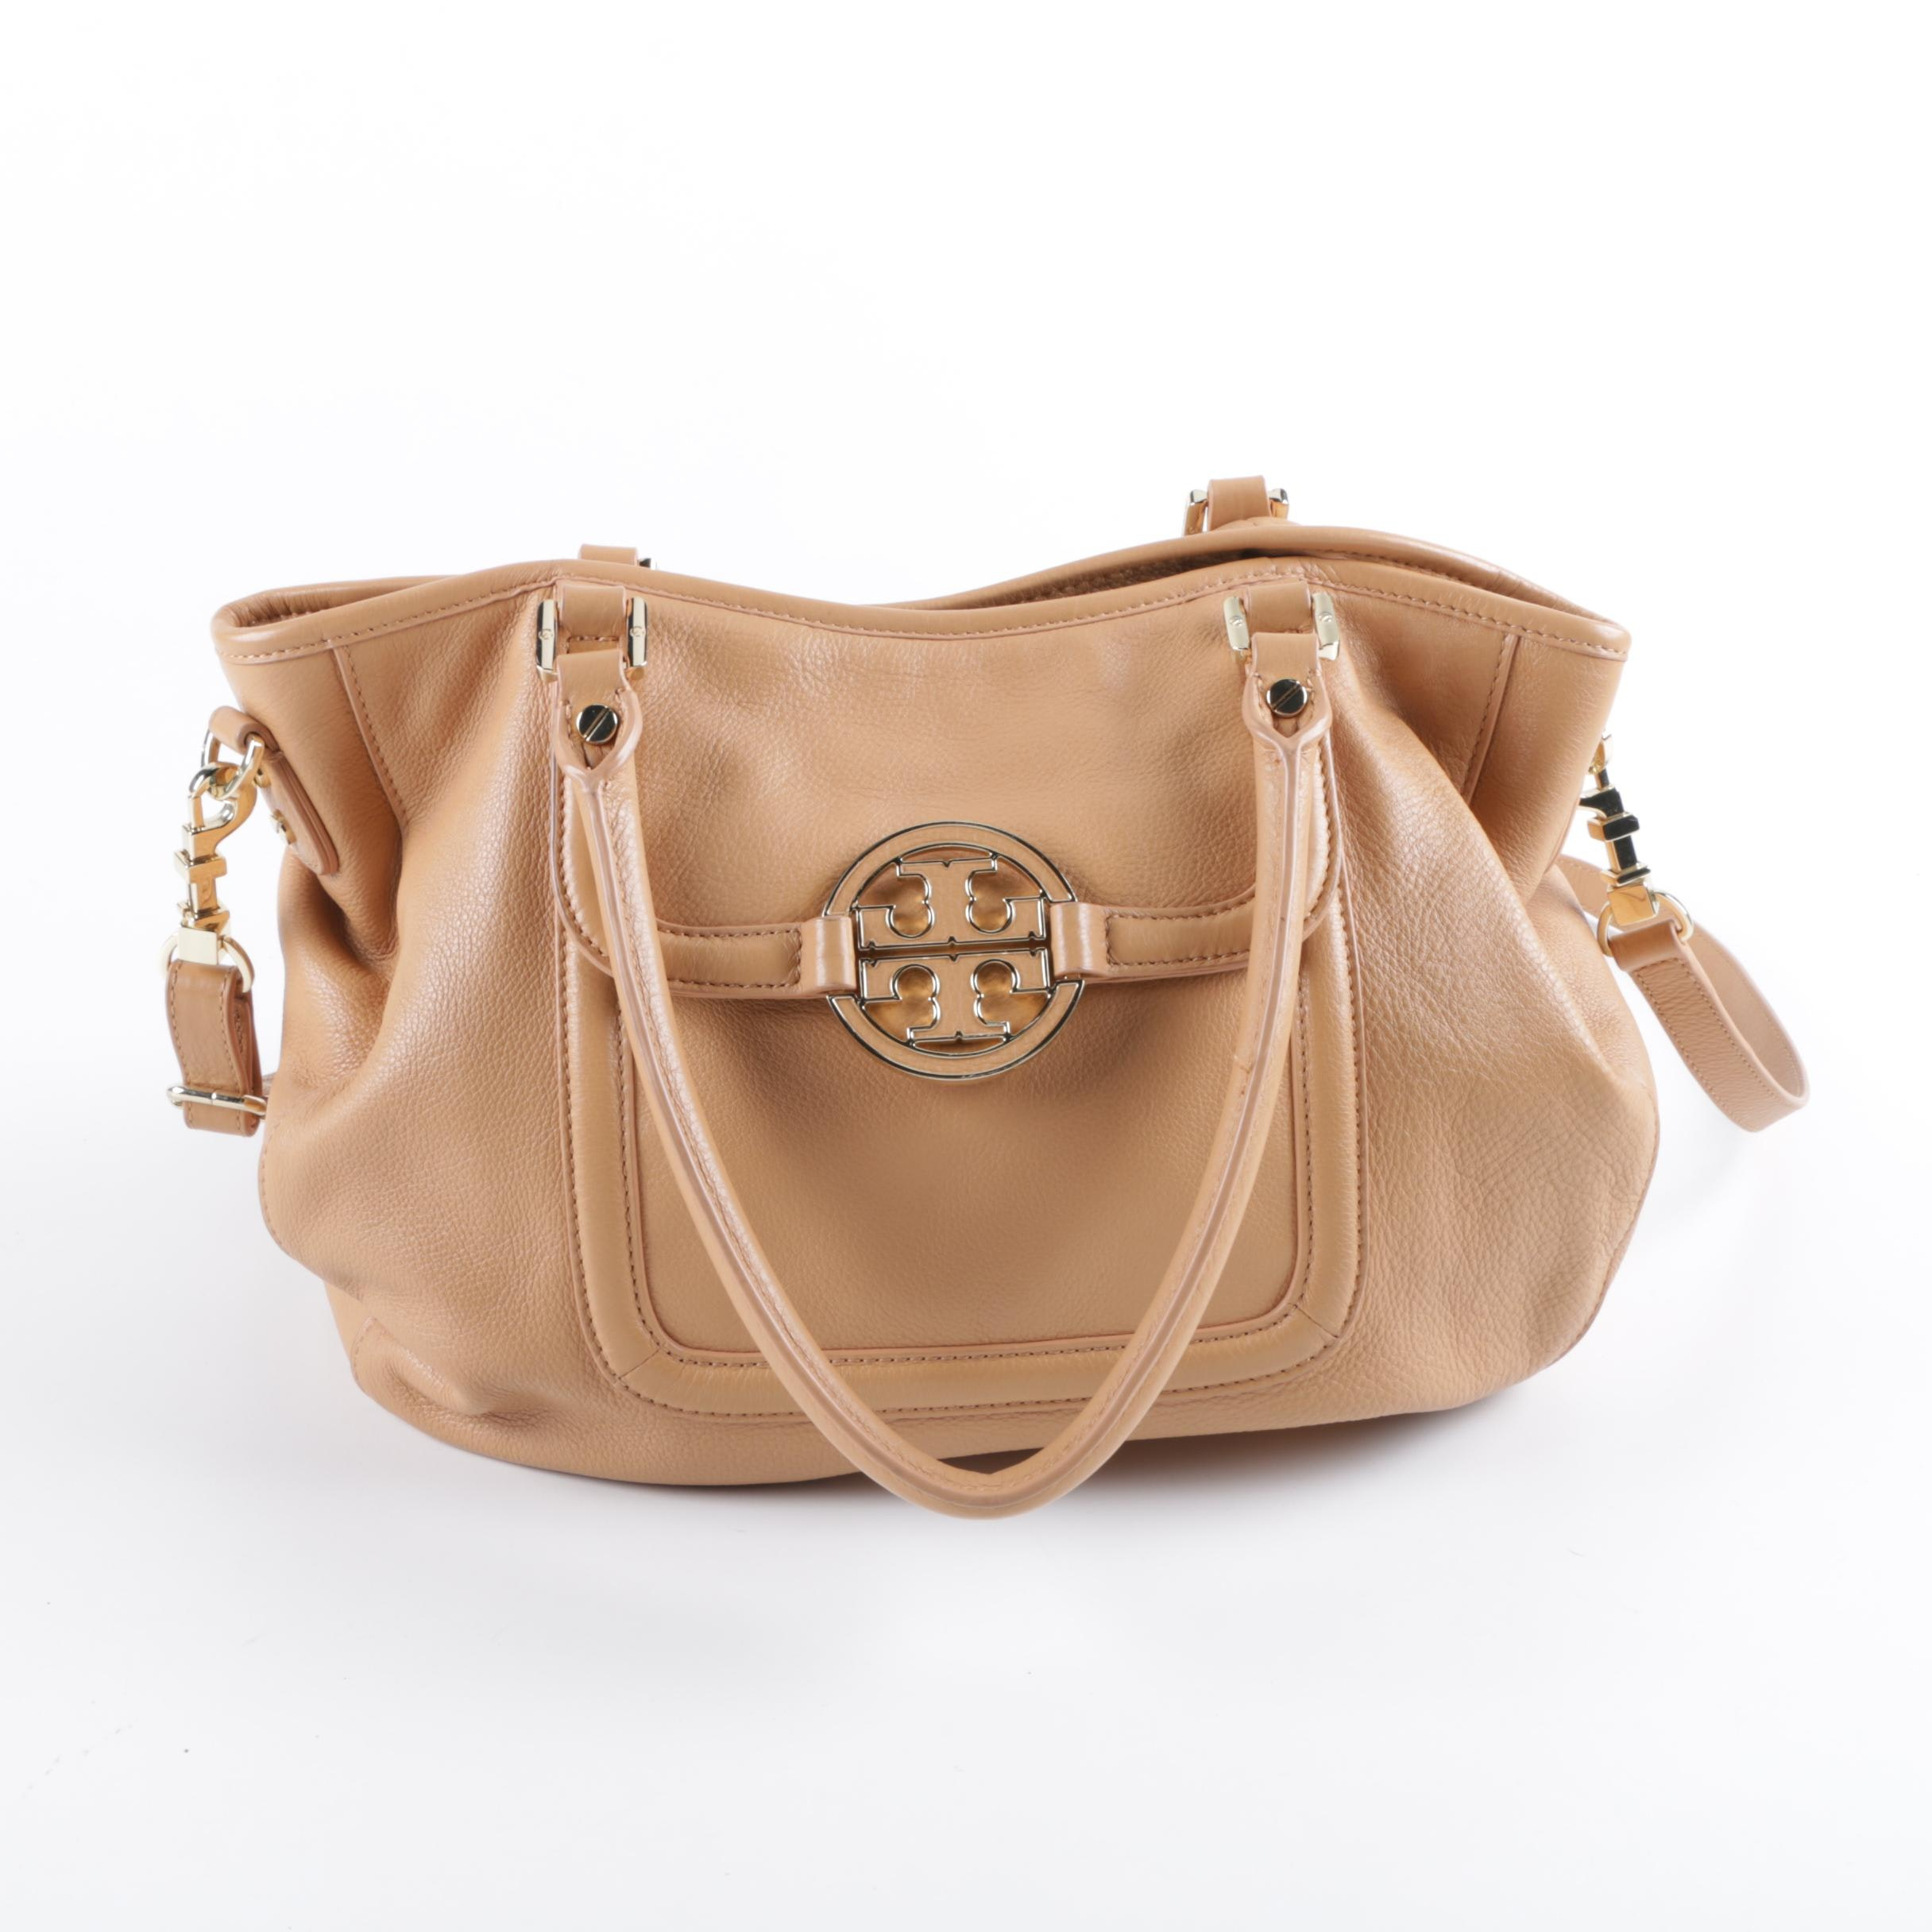 Tory Burch Camel-Colored Leather Convertible Satchel